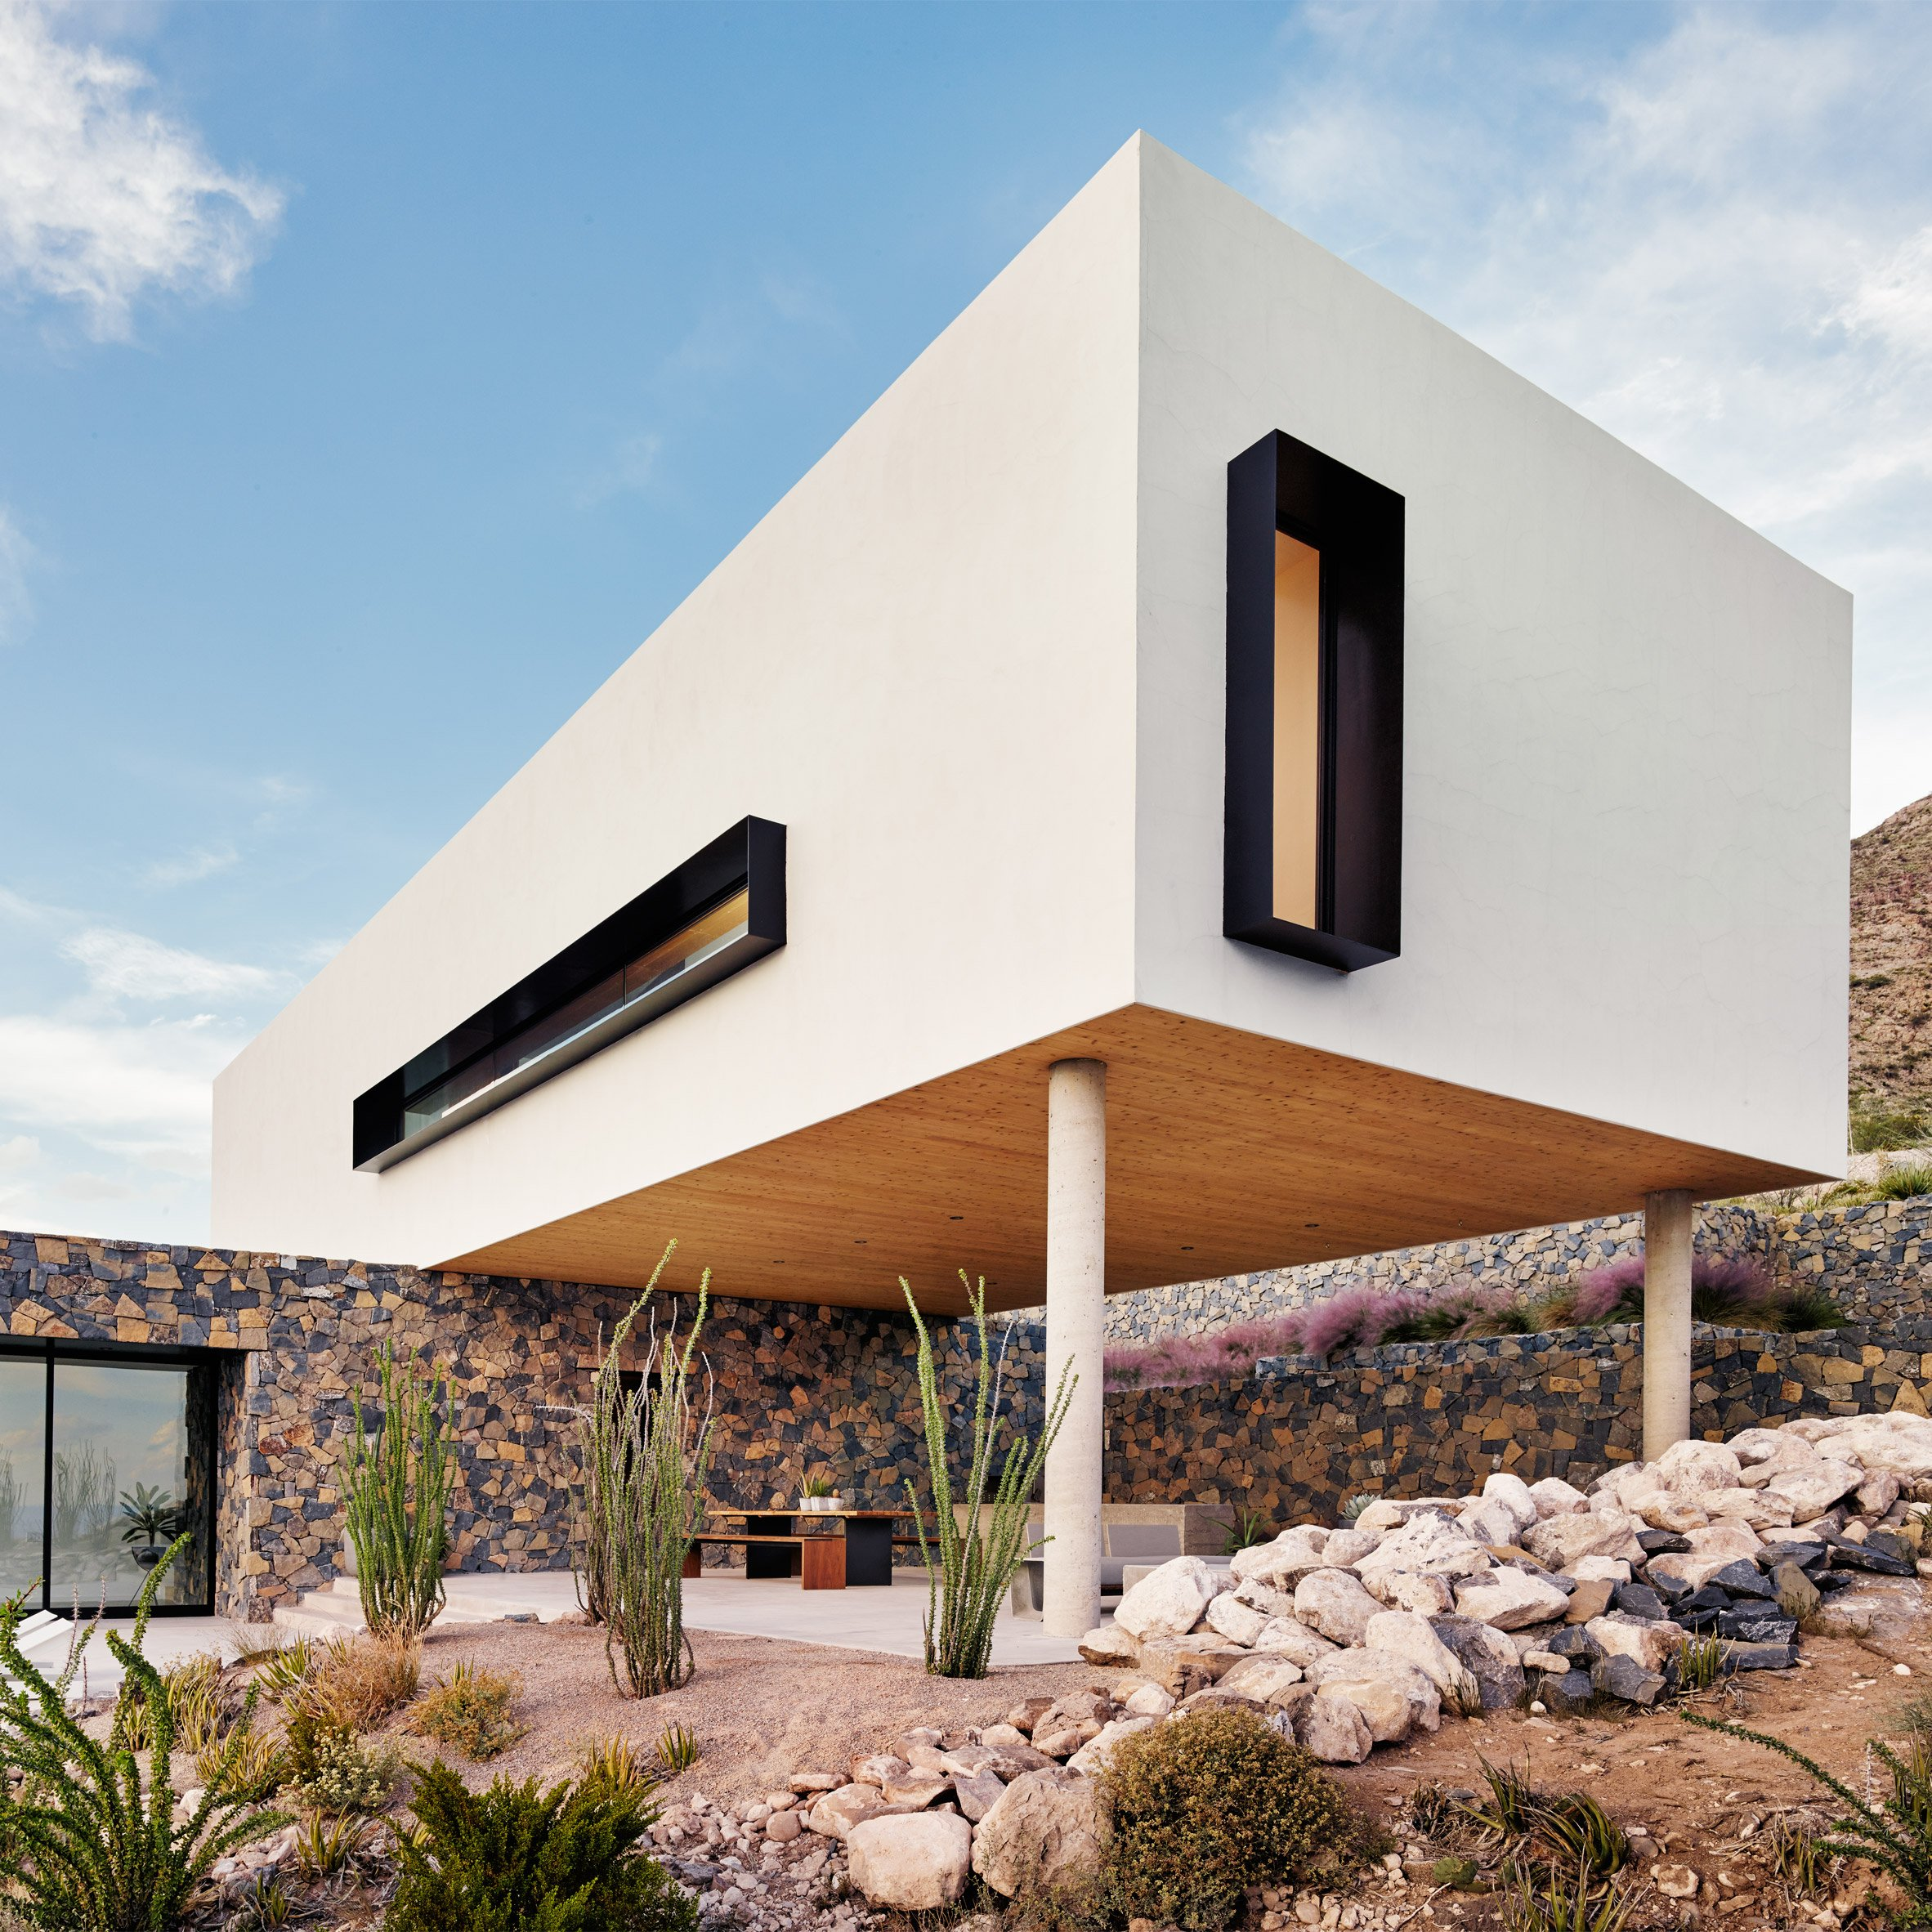 Desert architecture and design | Dezeen